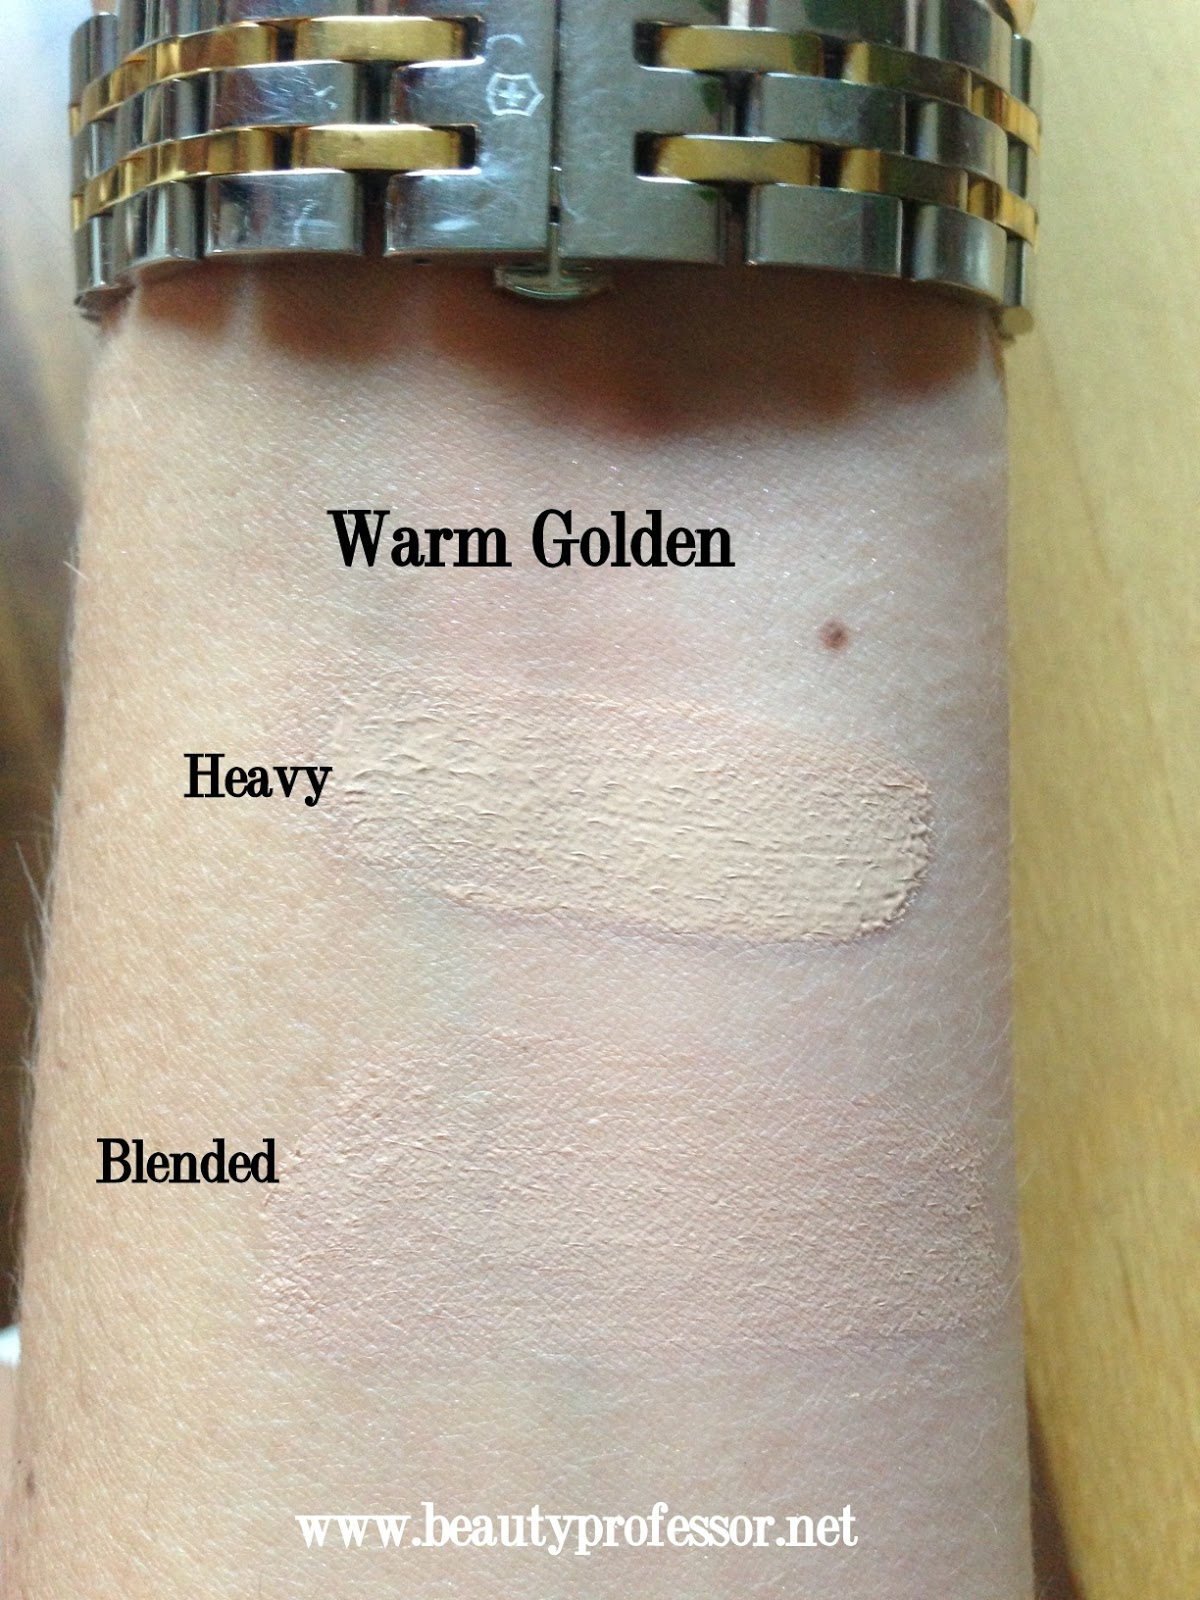 warm golden revlon